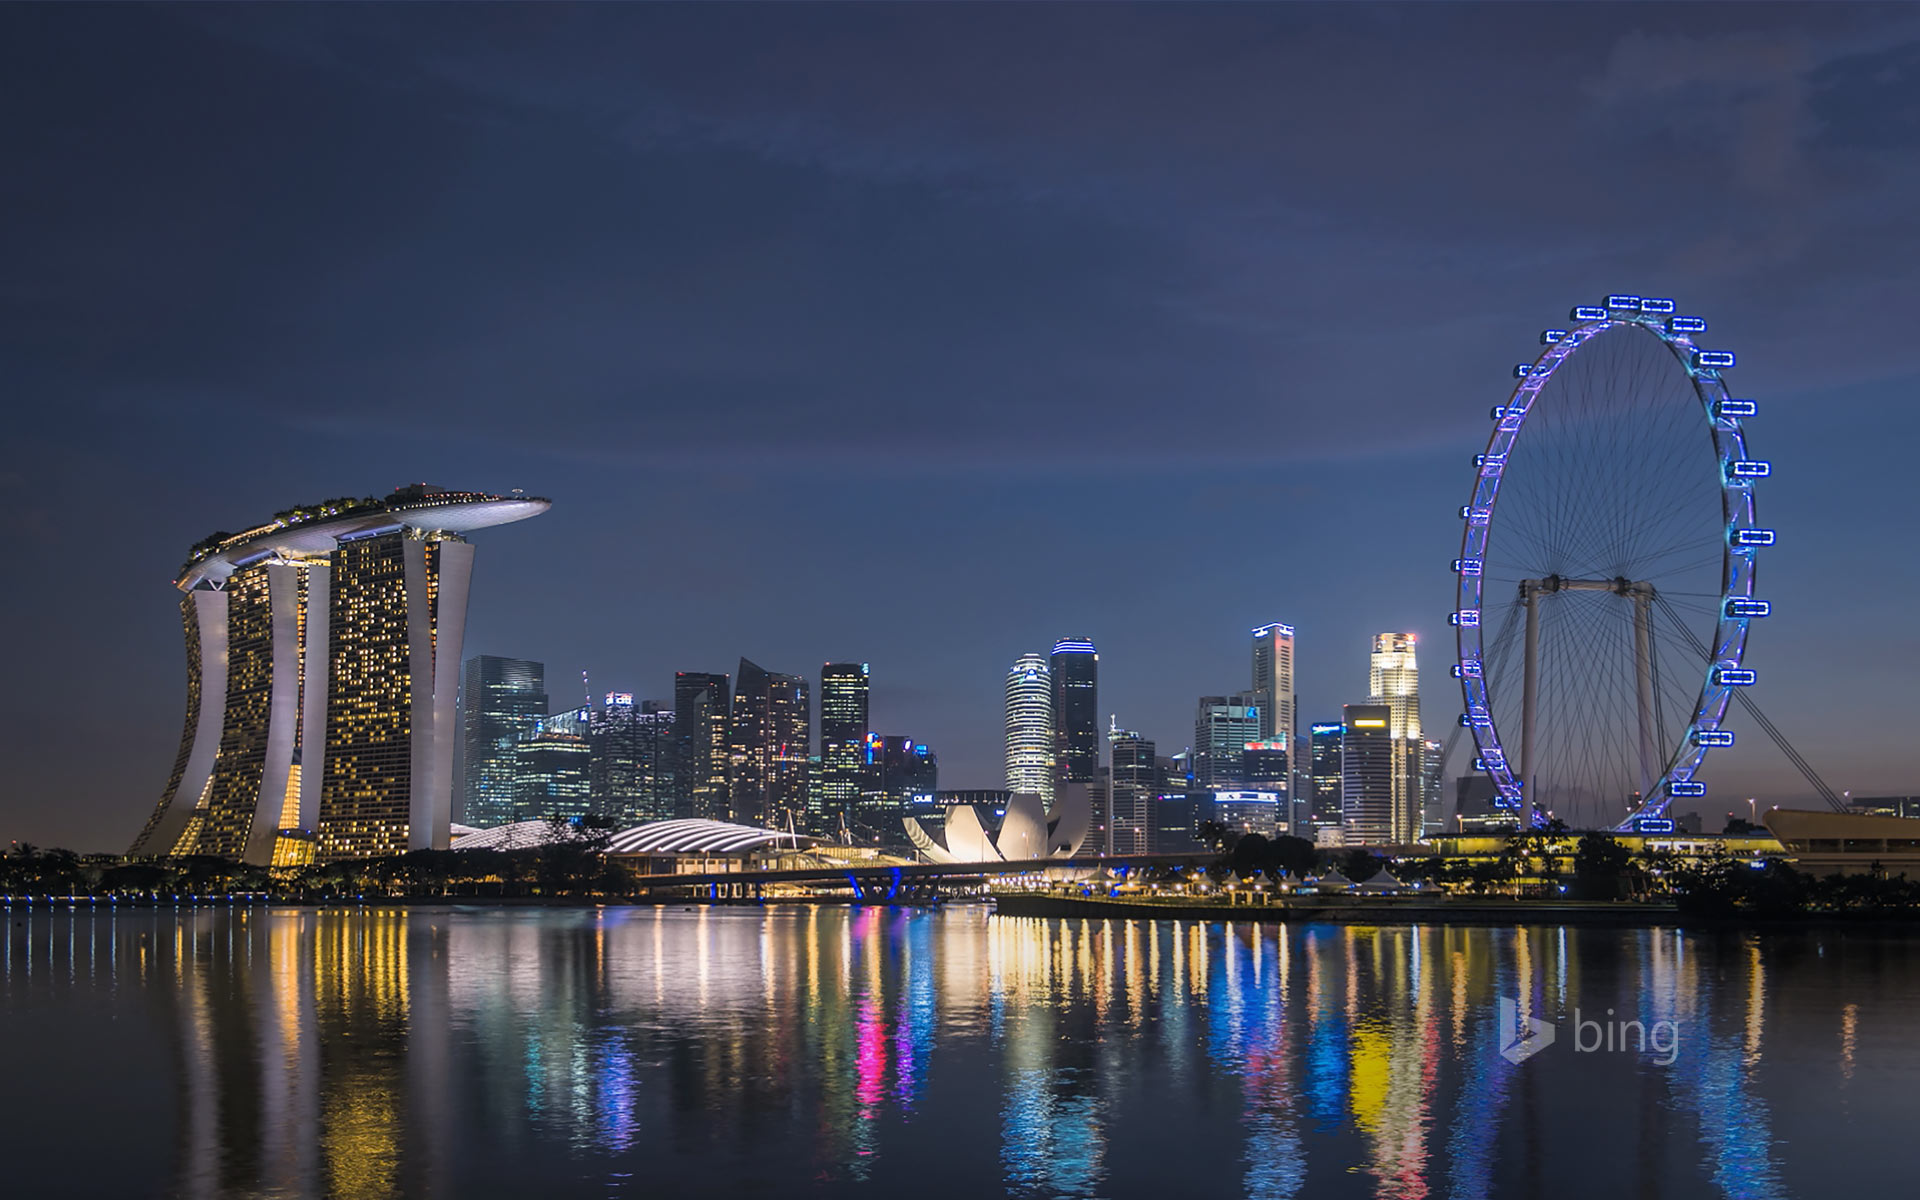 Marina Bay skyline in Singapore